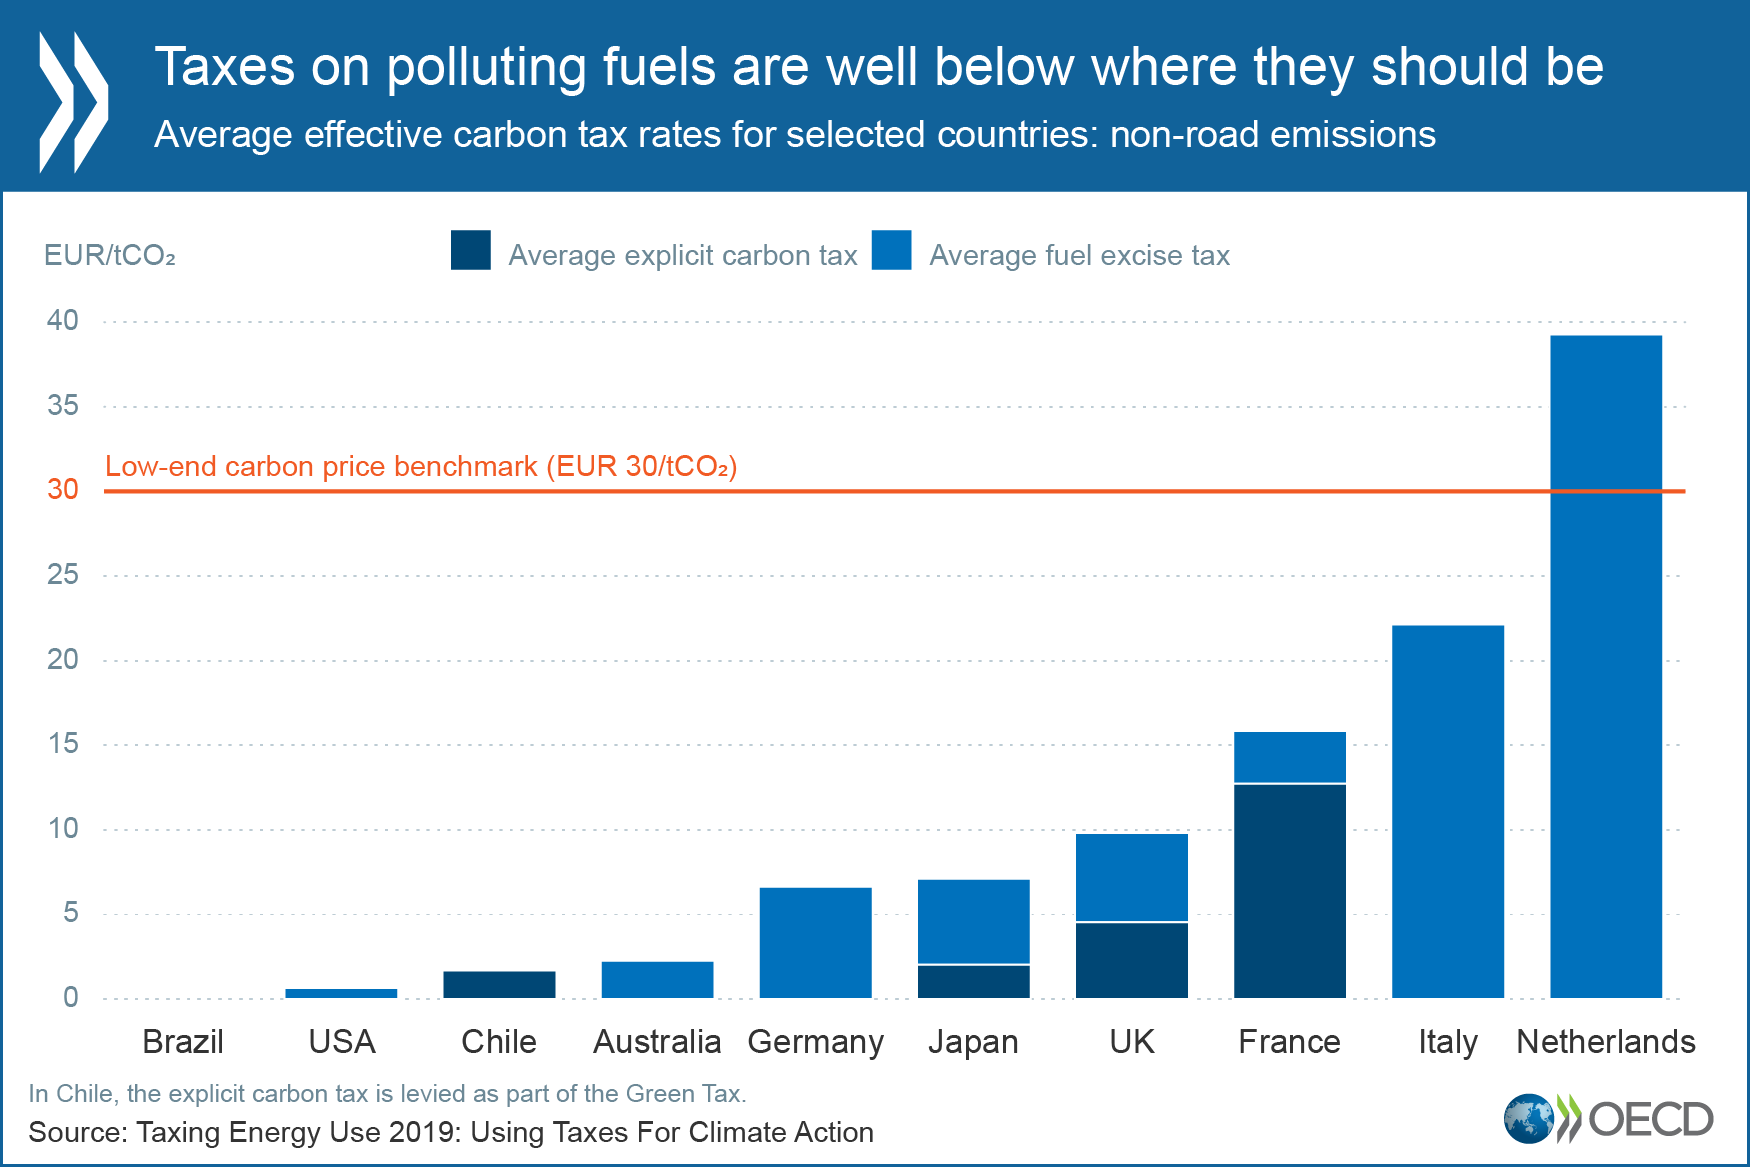 Taxes on polluting fuels